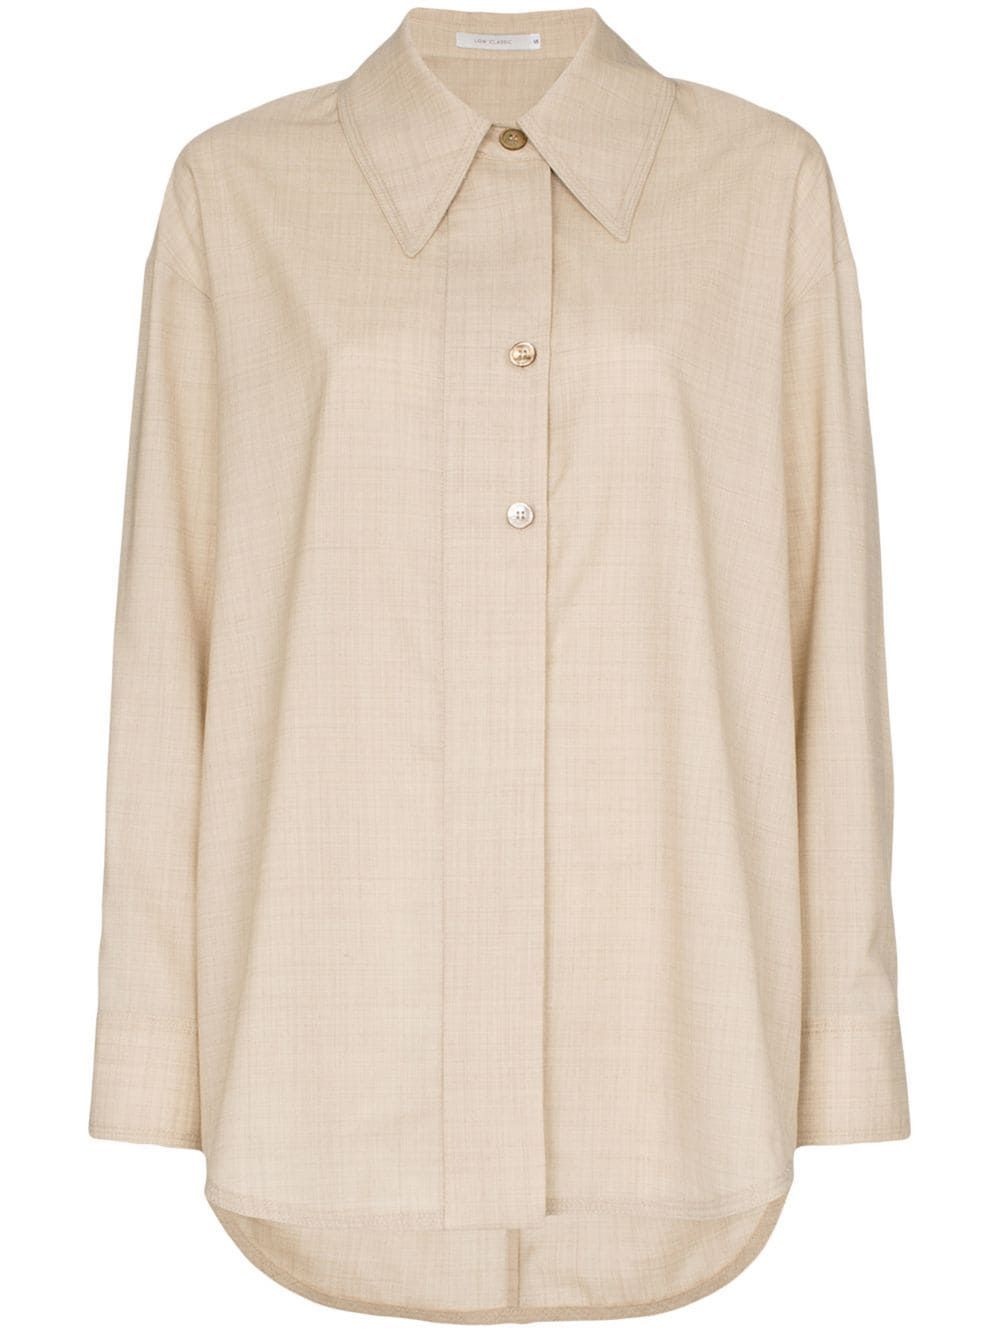 a55cfa12bf39 Low Classic oversized wool shirt - Neutrals | Products in 2019 ...